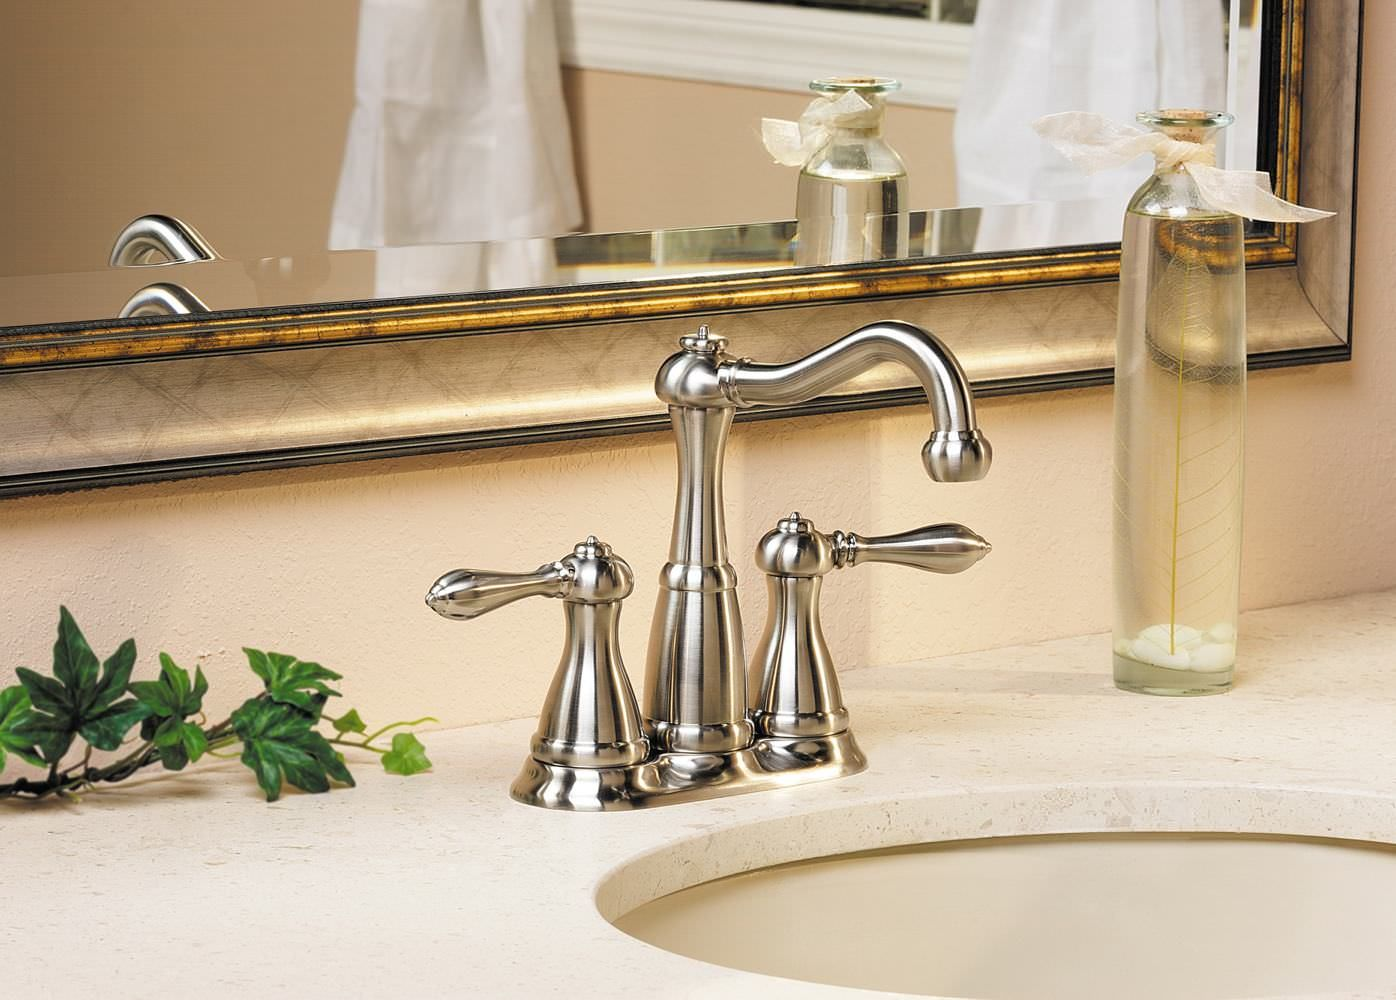 Oil Rubbed Bronze Faucet For Your Bathroom